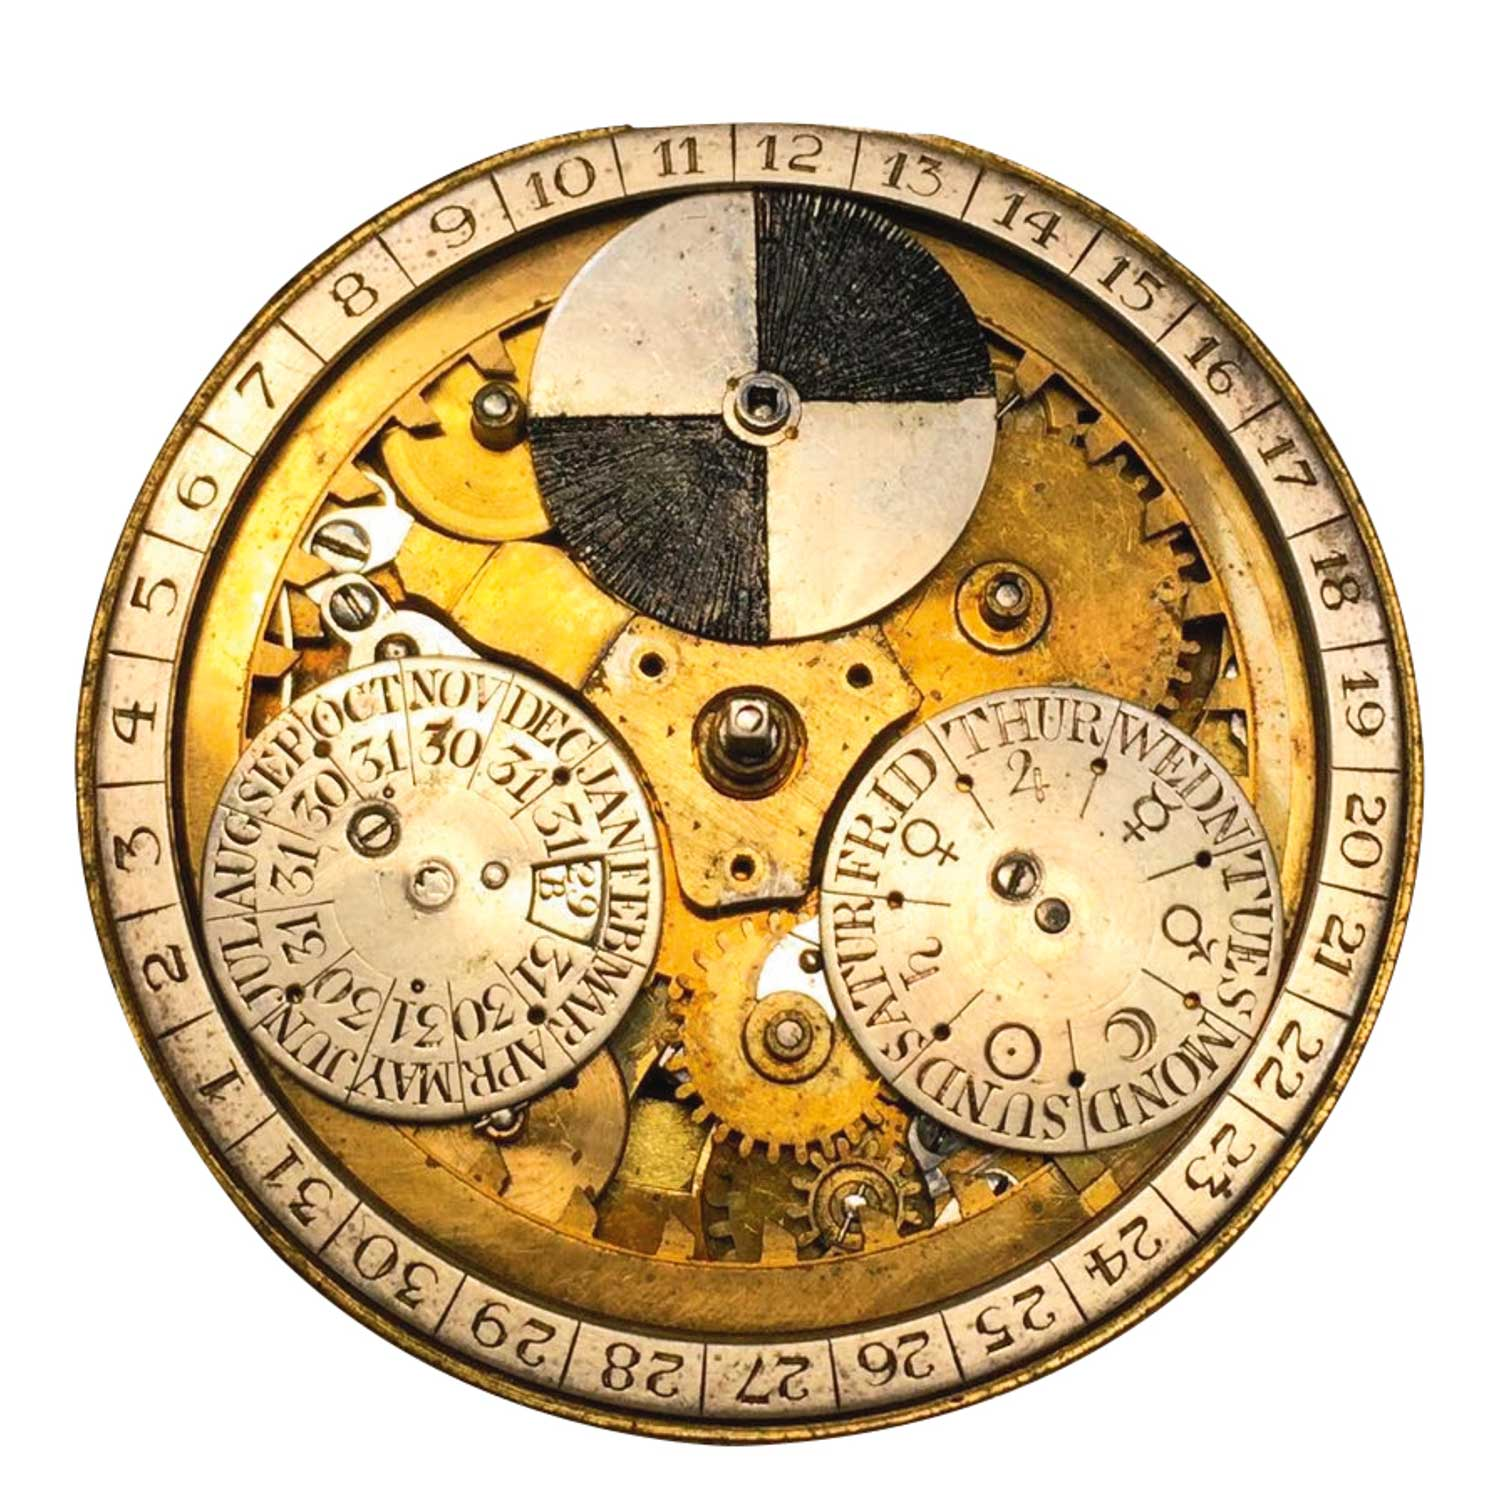 The movement as it is under the dial of the Thomas Mudge Perpetual Calendar pocket watch No. 525 (Image: sothebys.com)